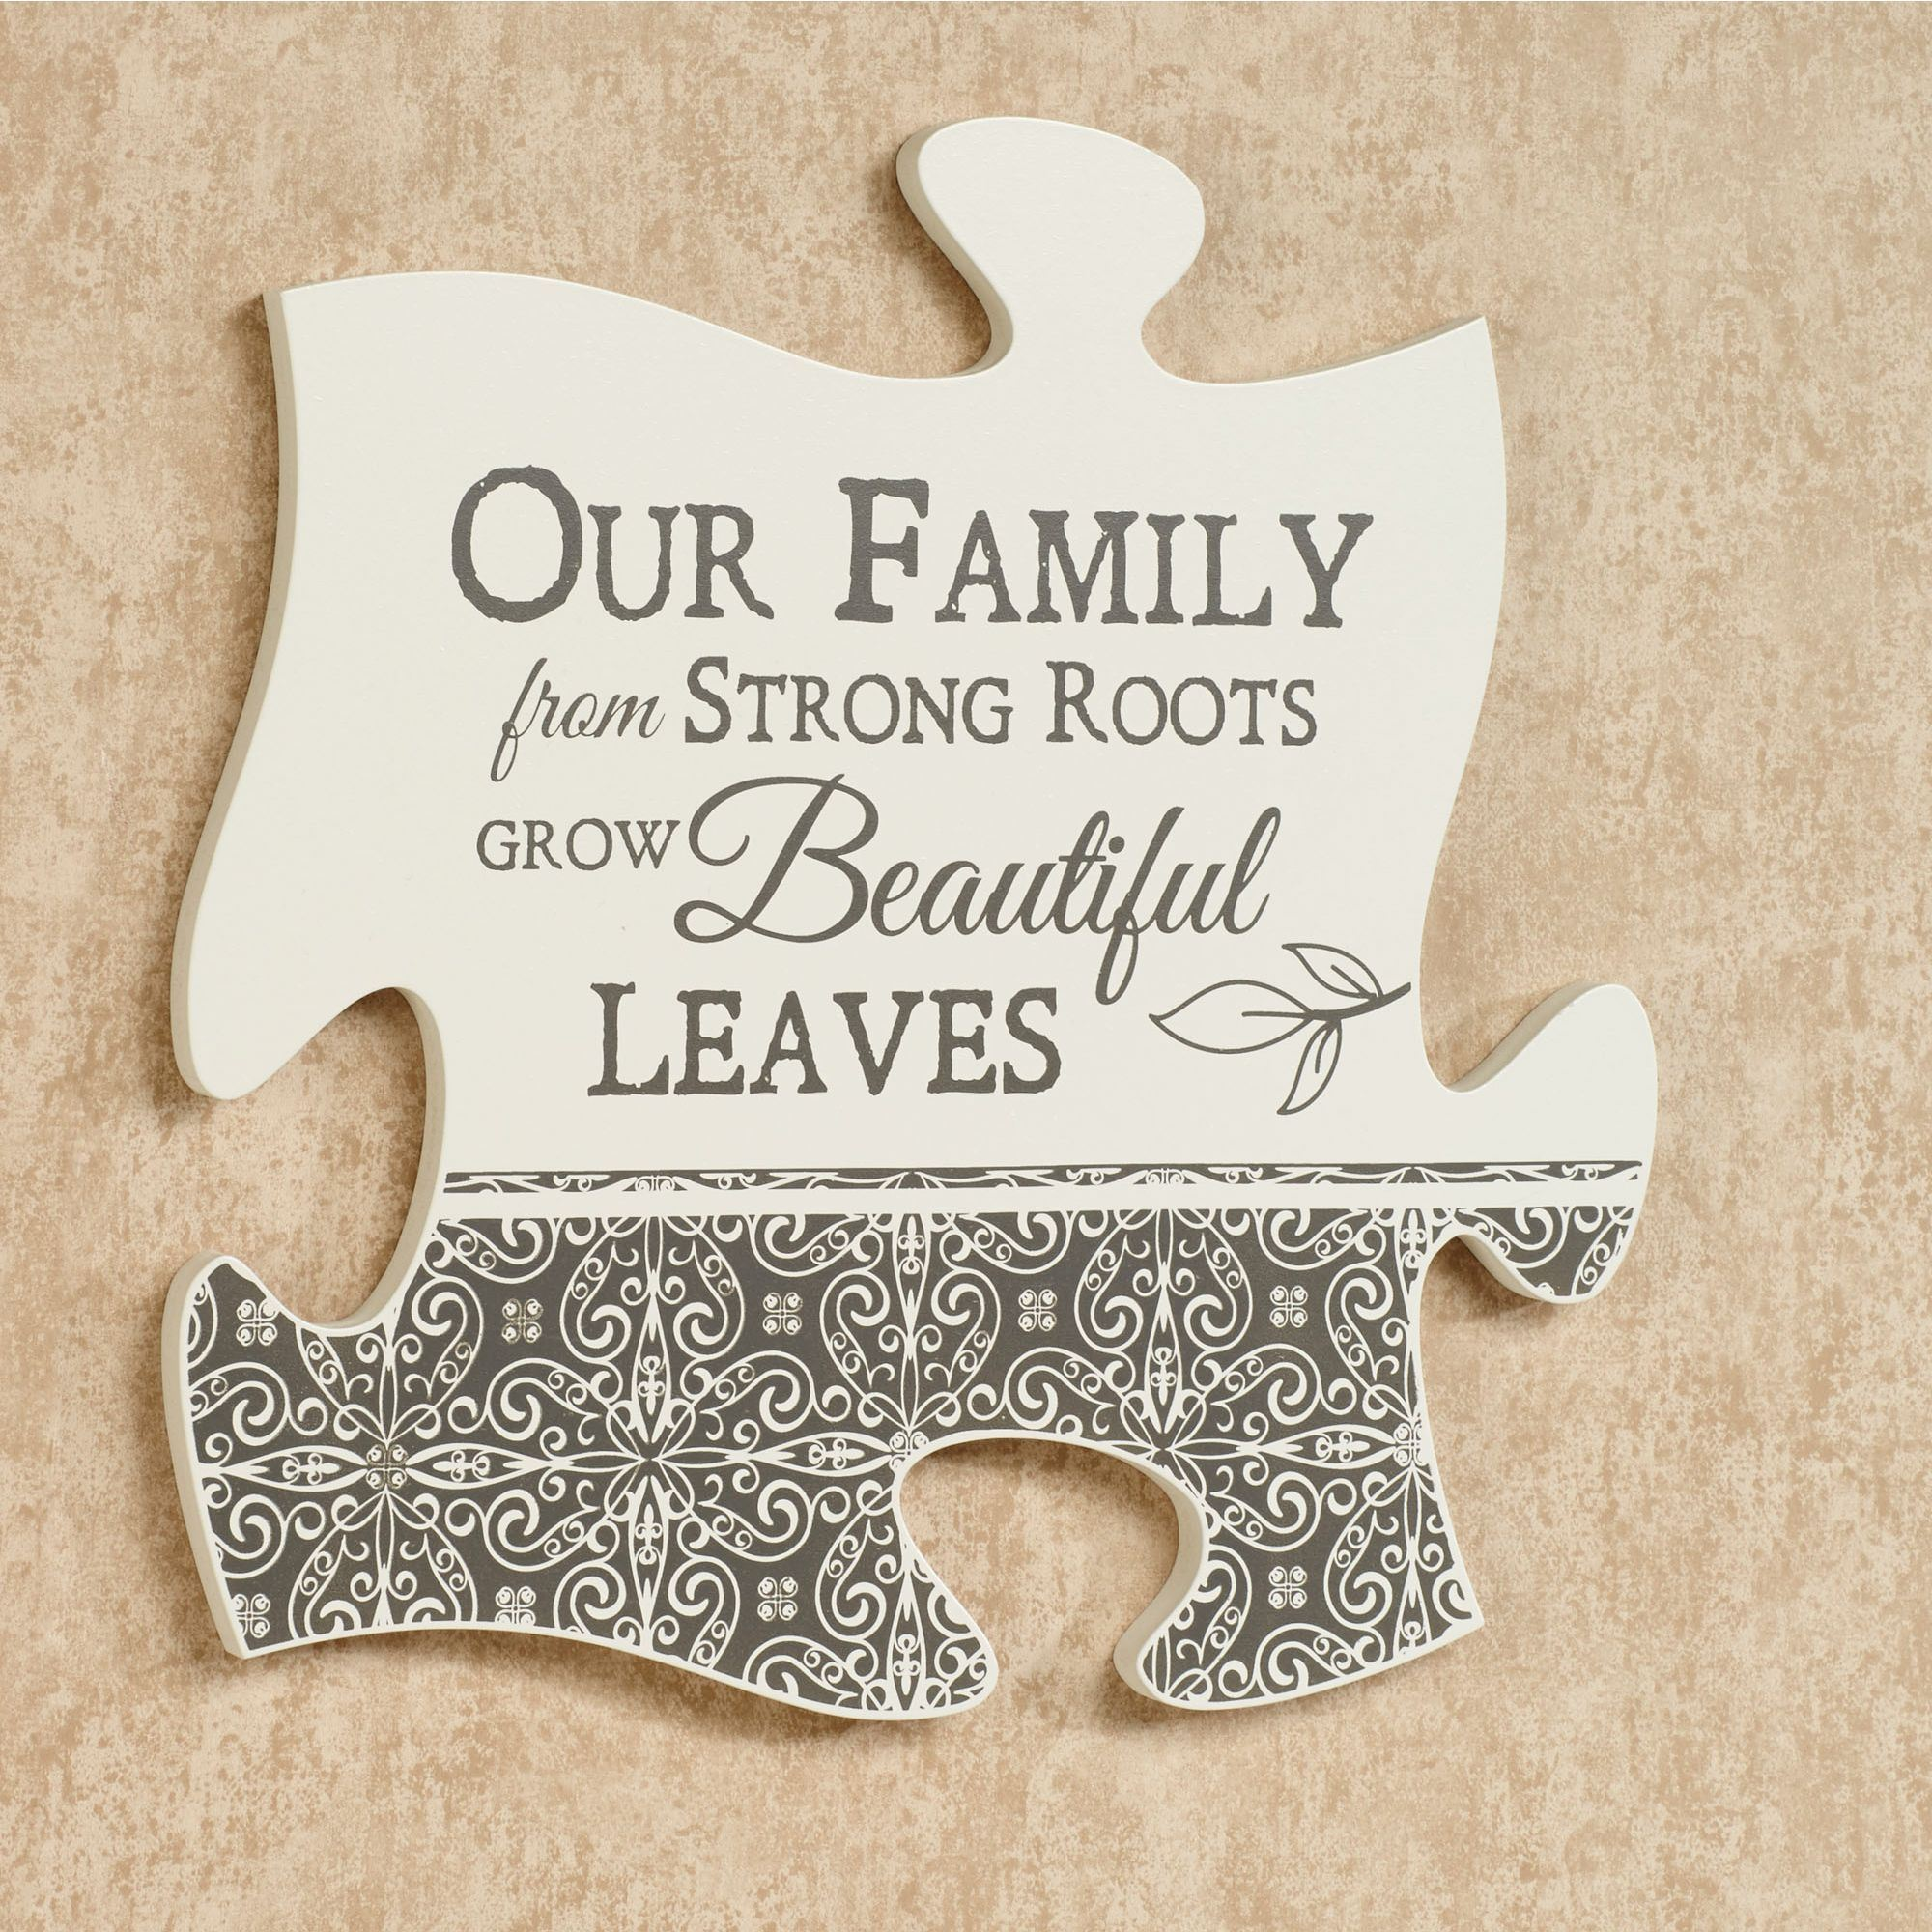 Our Family Quote Puzzle Piece Wall Art